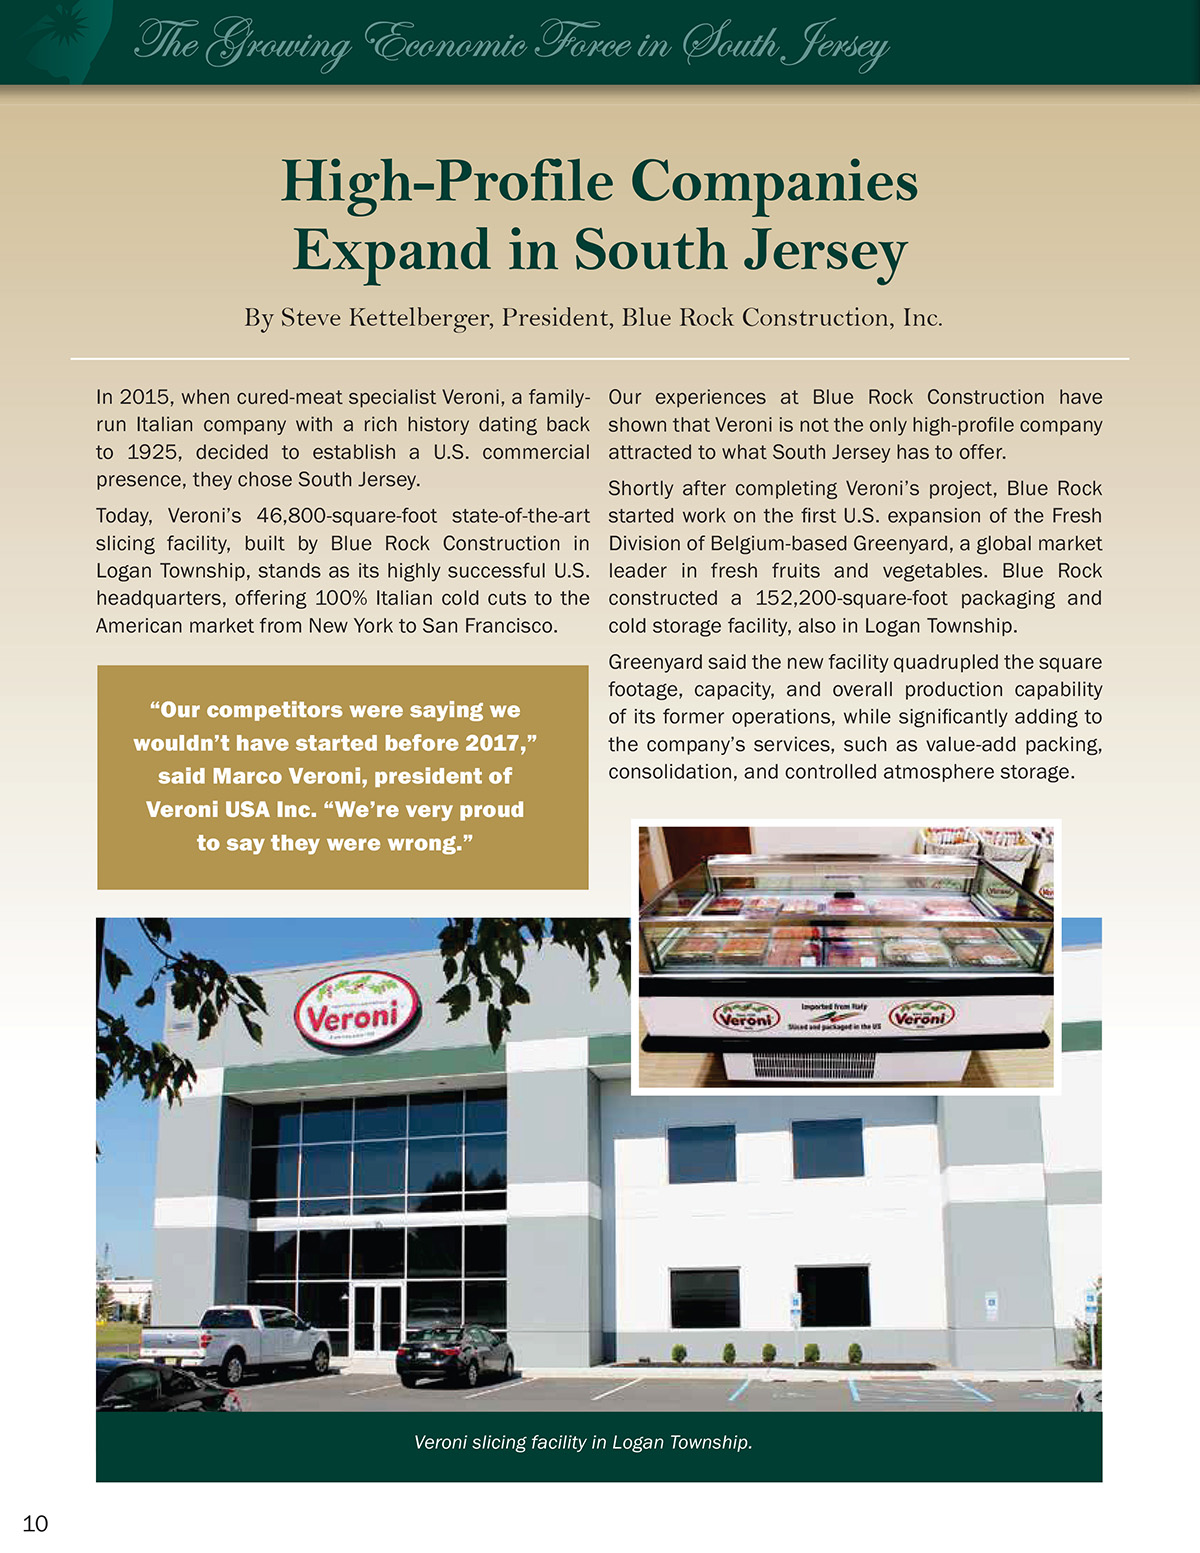 High-Profile Companies Expand in South Jersey - Blue Rock